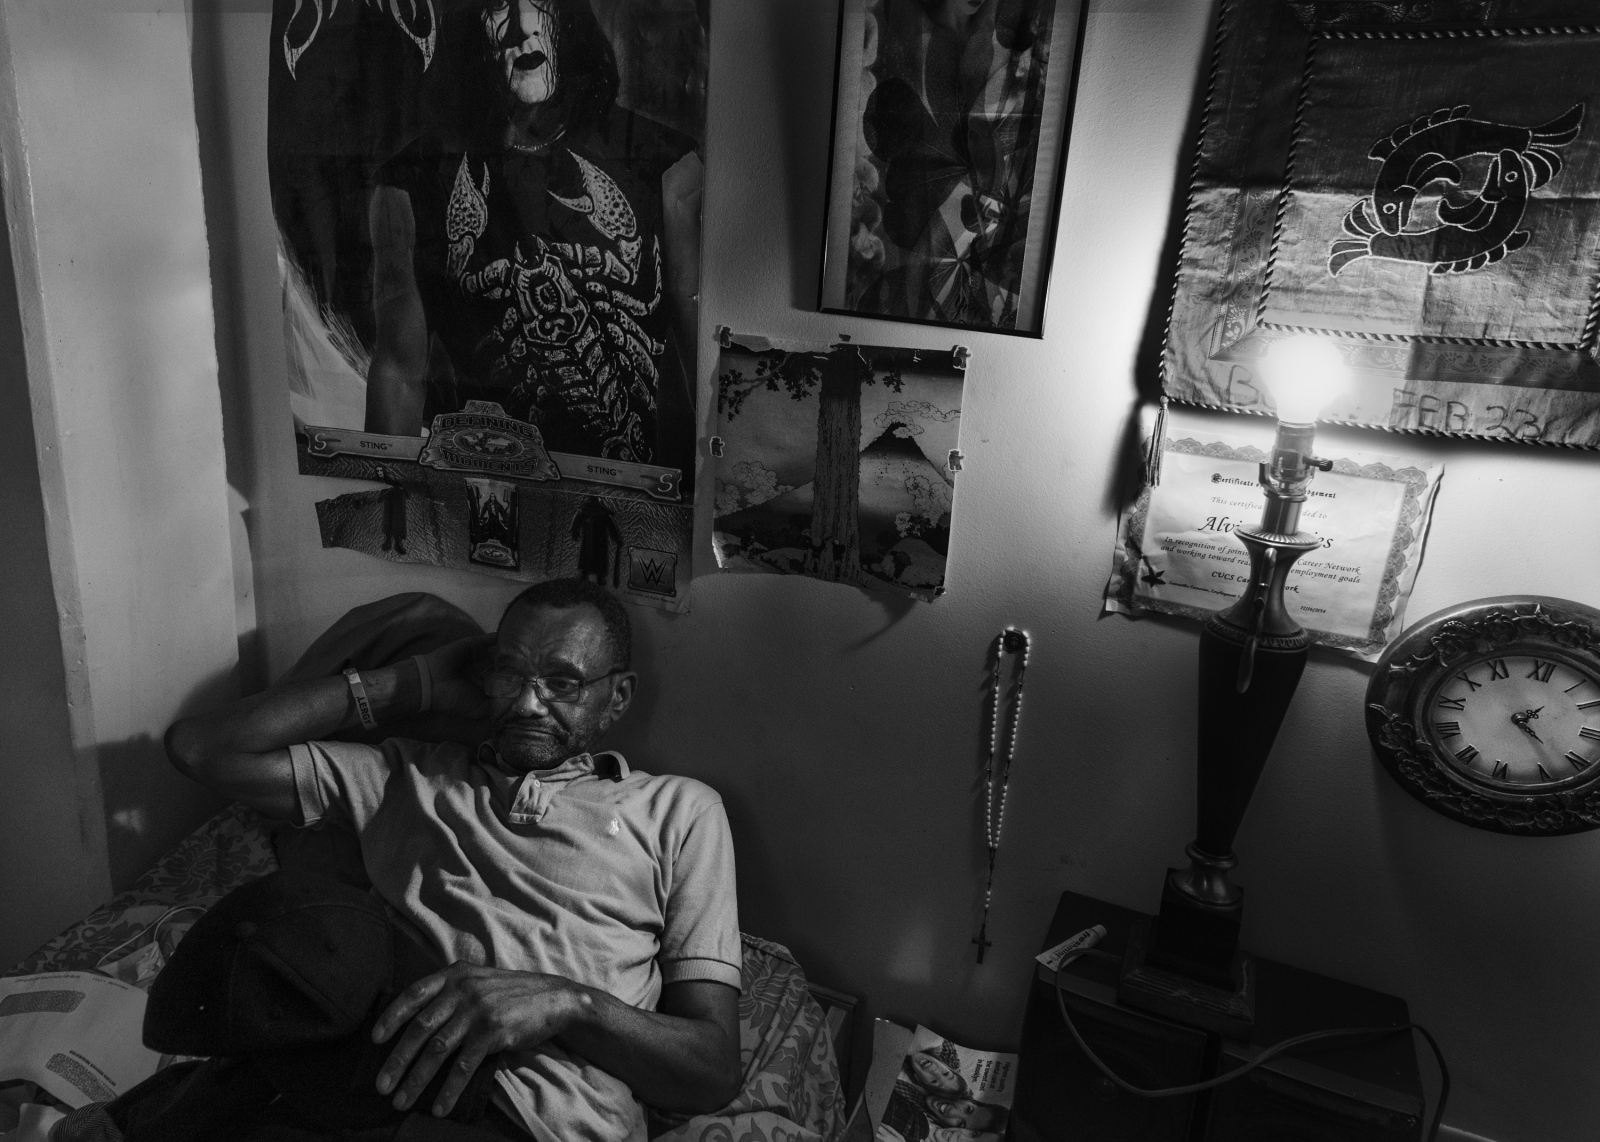 """Alvin watches TV at his apartment in Downtown Brooklyn days after being released from Rikers Island. All the charges were dropped when CCTV footage demonstrated Alvin was Innocent. He is currently in the process of suing the city for wrongful arrest and false imprisonment. Alvin said, """"I never bothered nobody in my life, I don't look for trouble, I'm not violent, only in the war because I had to... not even a transit ticket, clean"""". August 18th, 2016August 25th, 2016"""